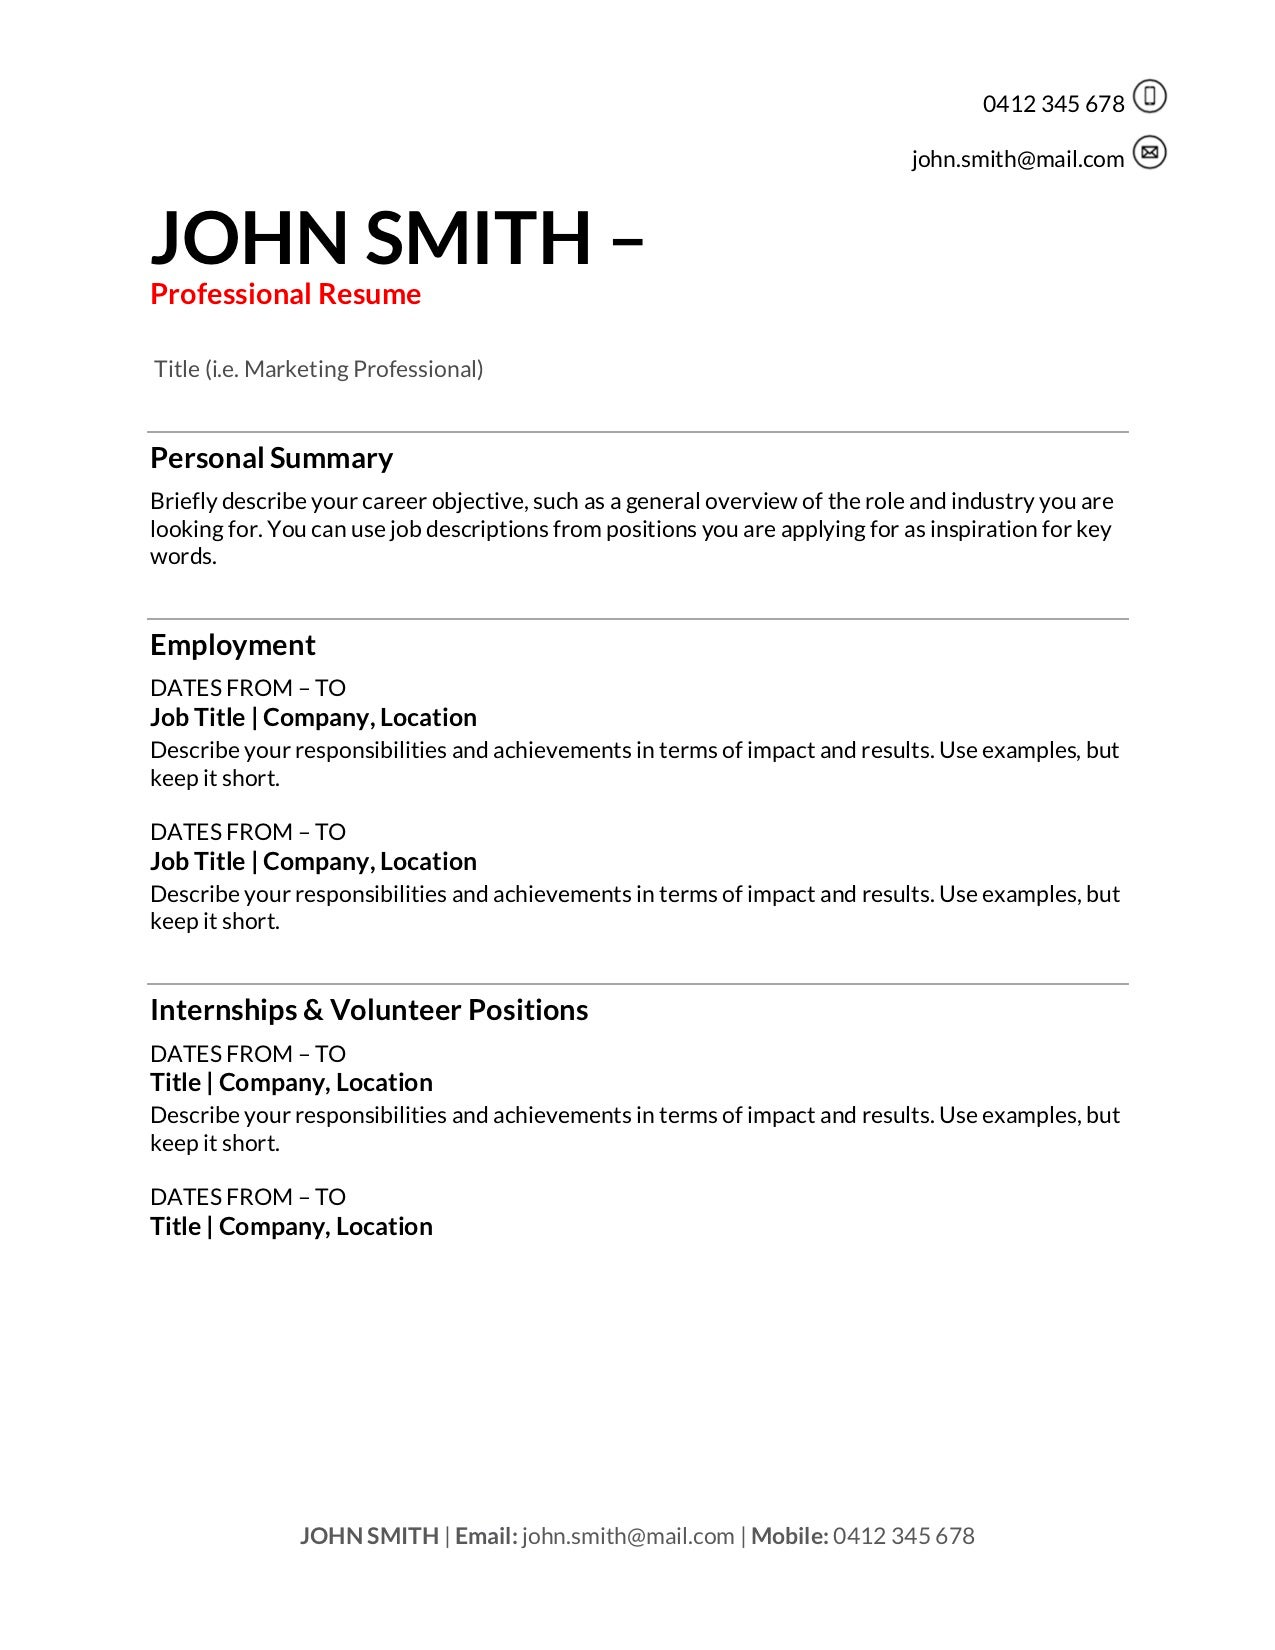 free resume templates to write in training au writing linkedin review writer vancouver Resume Writing A Resume In 2020